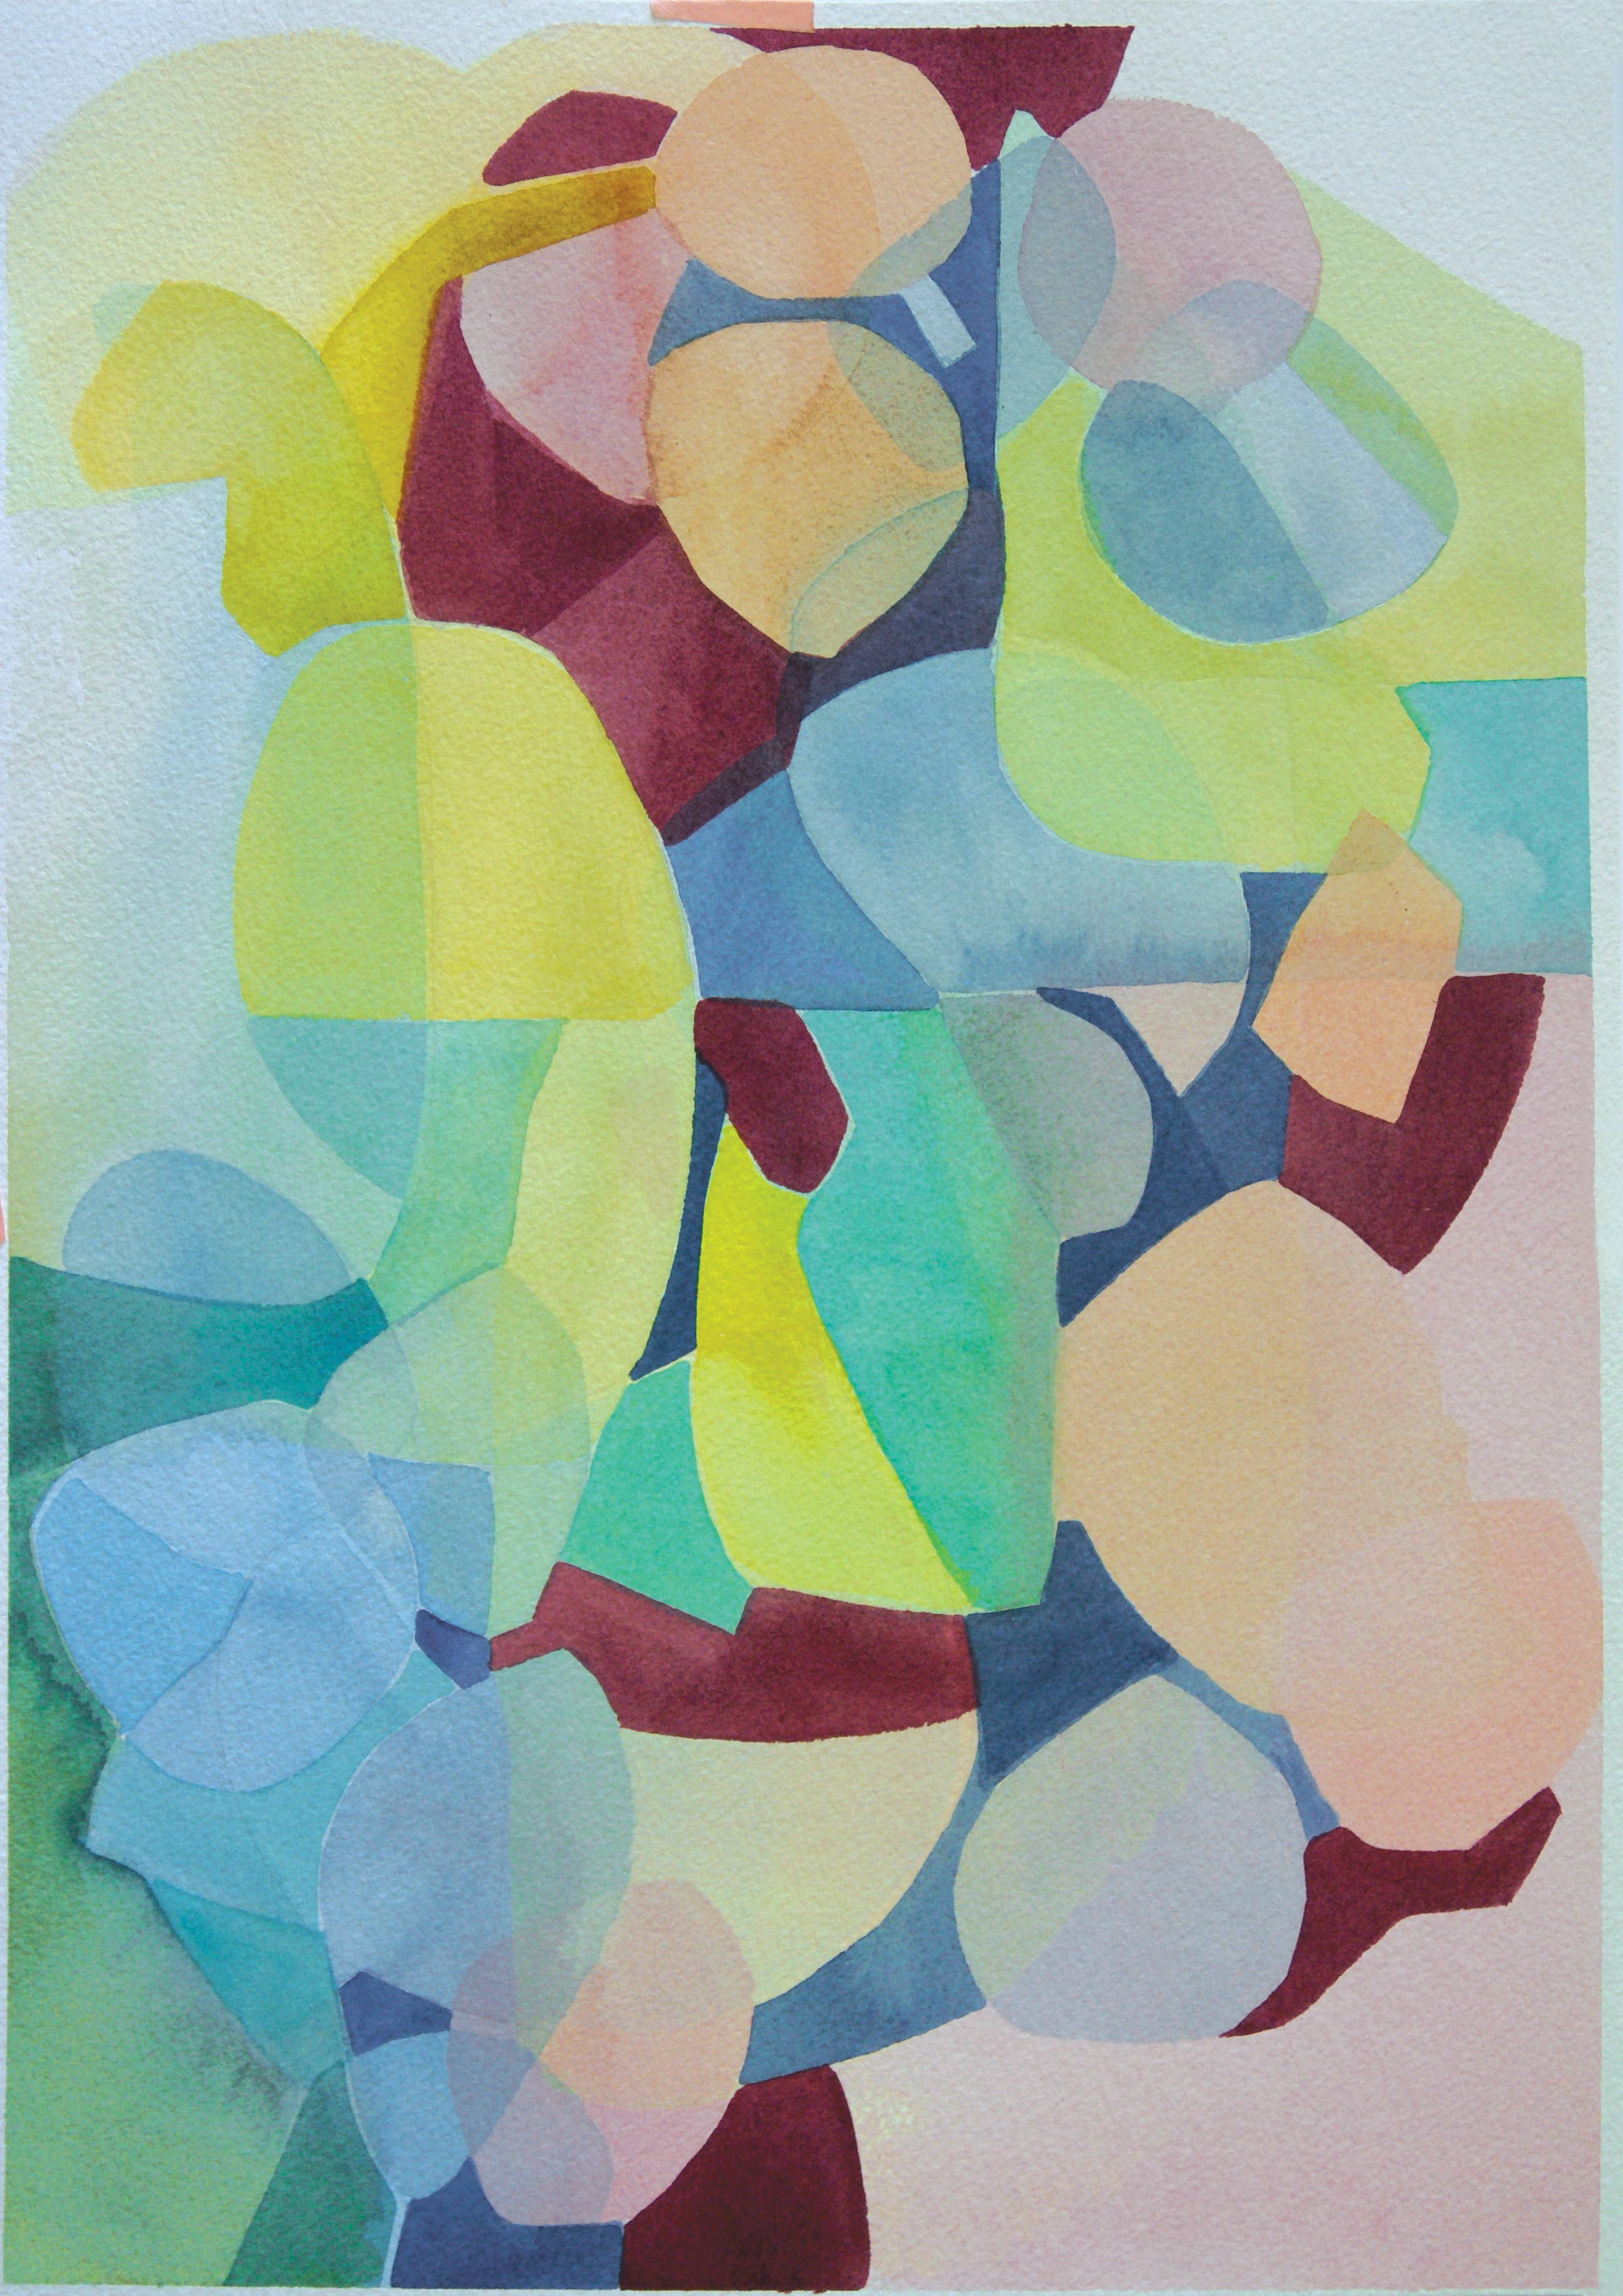 'Connect' A3 Watercolour painting on Arches Paper 300gsmAUD $495 Unframed   AVAILABLE